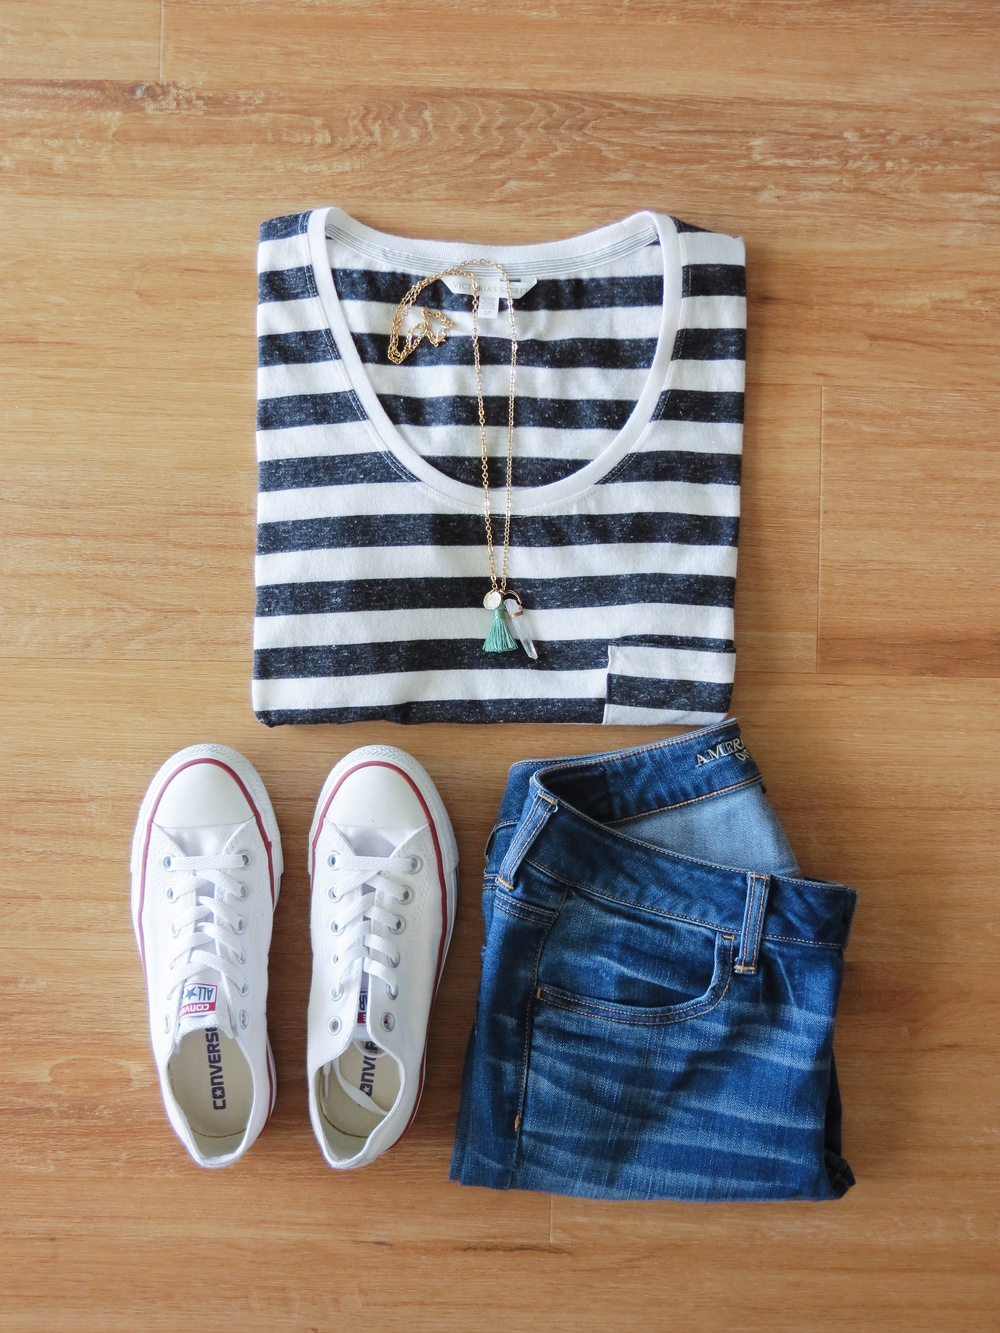 Leocadia K. Necklace // Victoria's Secret Shirt (similar) // American Eagle Jeans // Converse